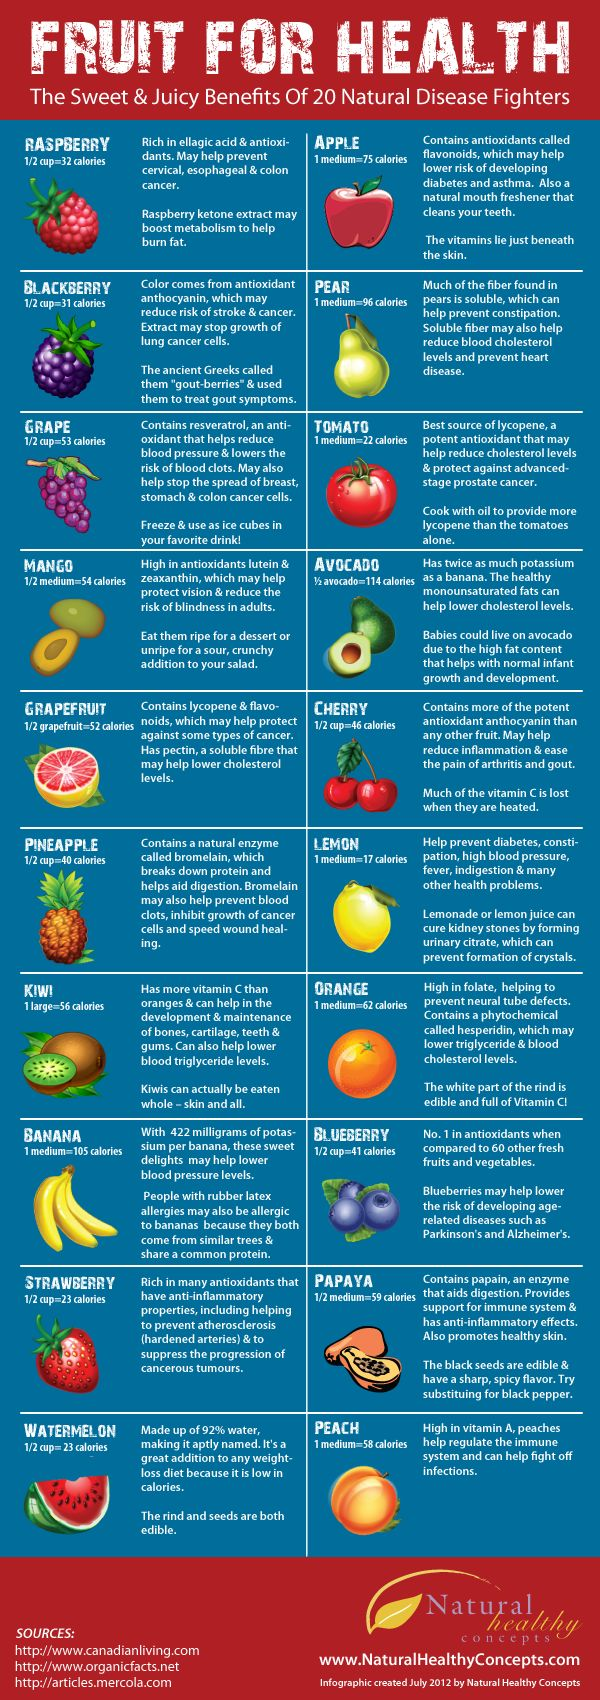 Fruit For Health Infographic